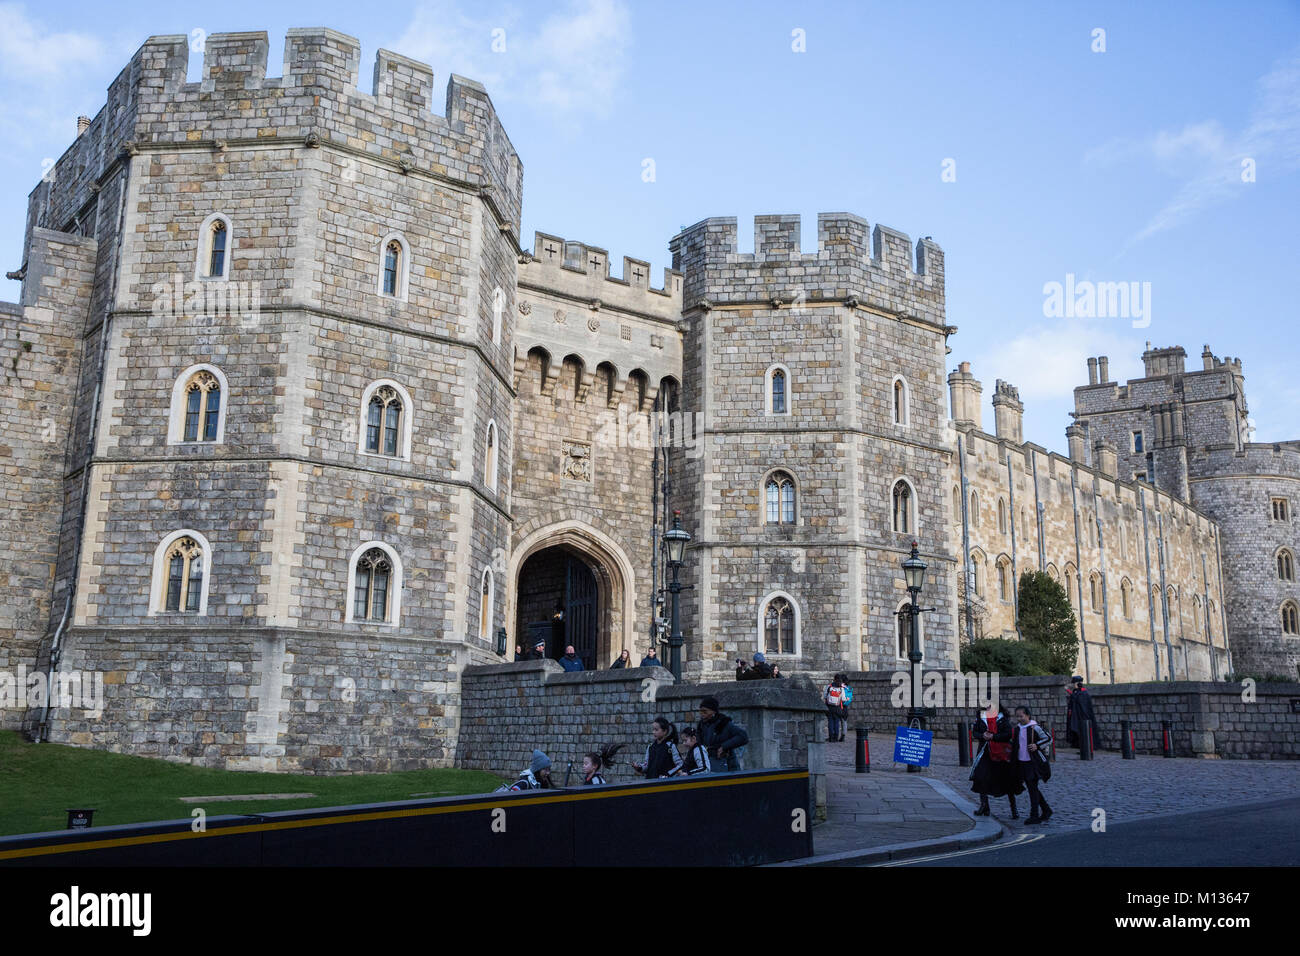 Windsor, UK. 25th January, 2018. The Henry VIII date at Windsor Castle. Stock Photo